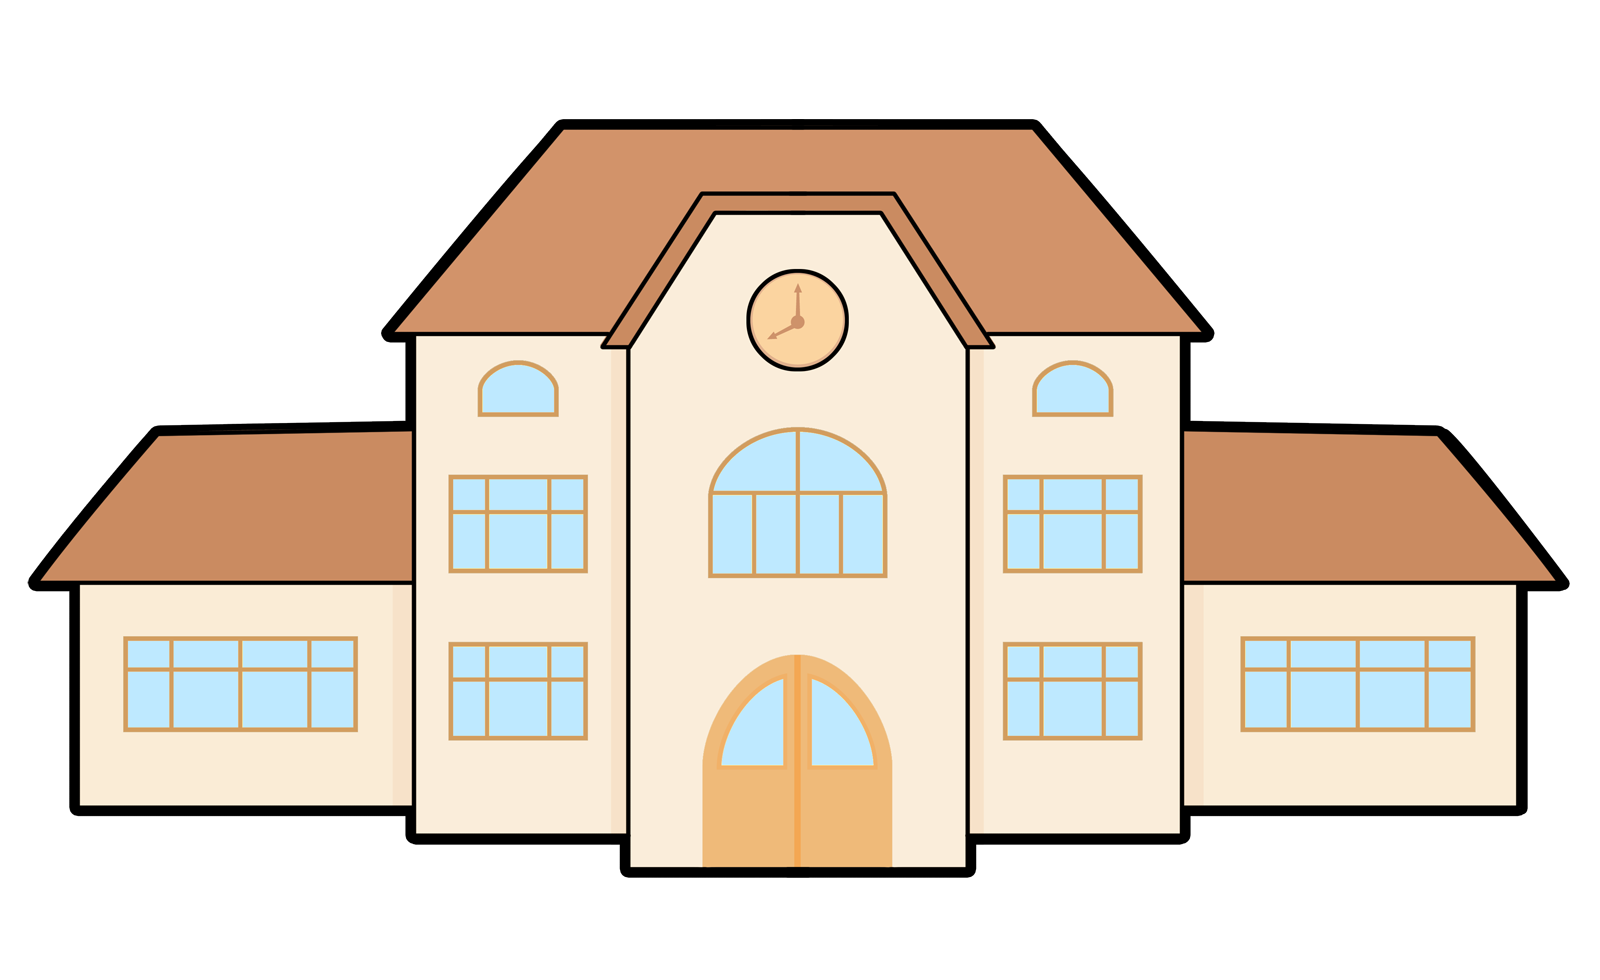 School Building Clipart & School Building Clip Art Images.